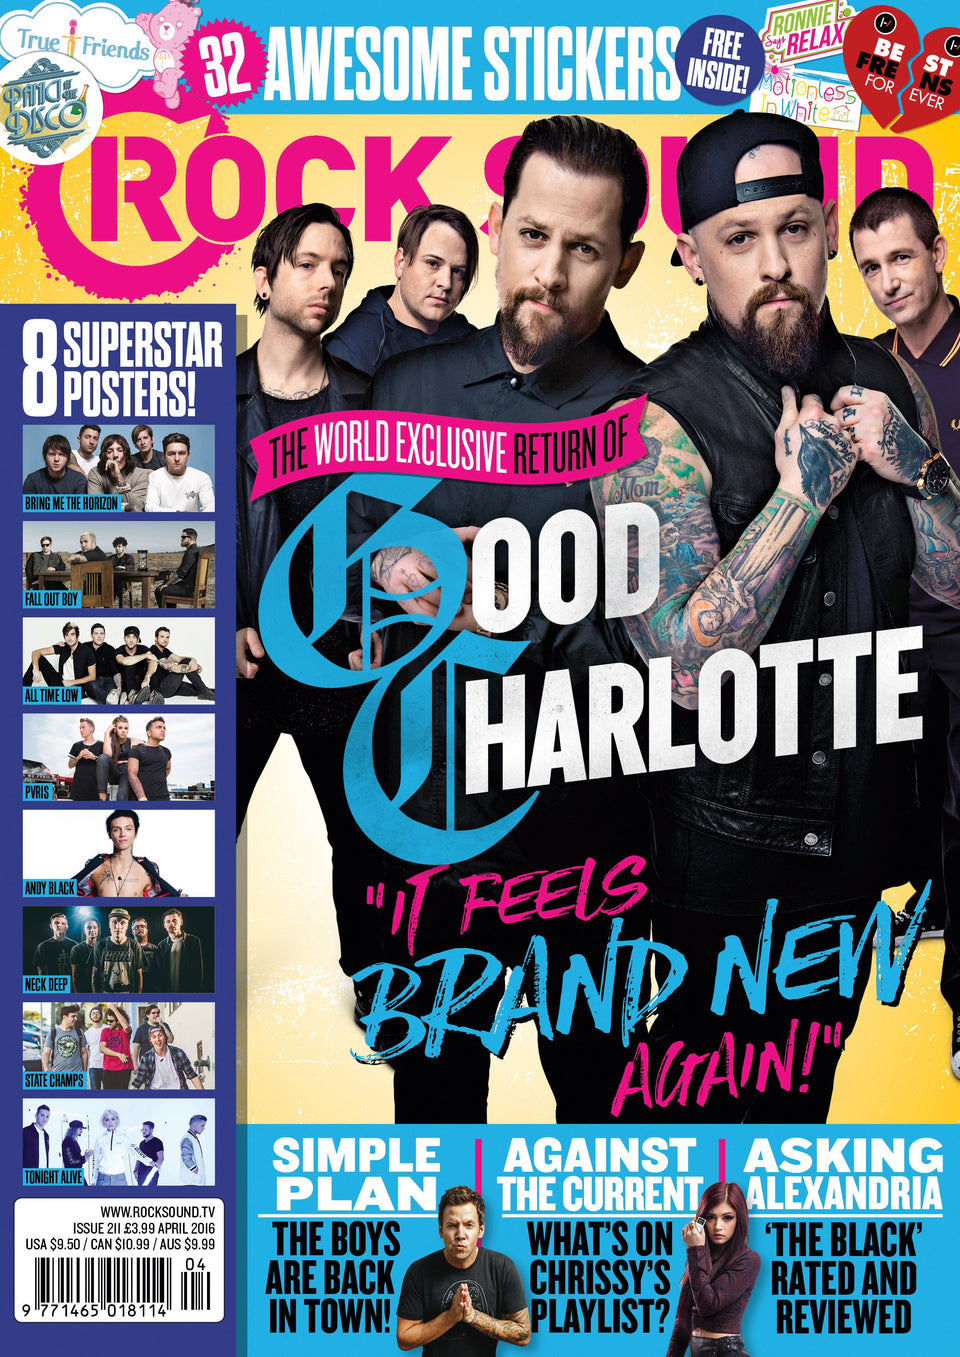 Rock Sound Issue 211 - Good Charlotte - Rock Sound Shop